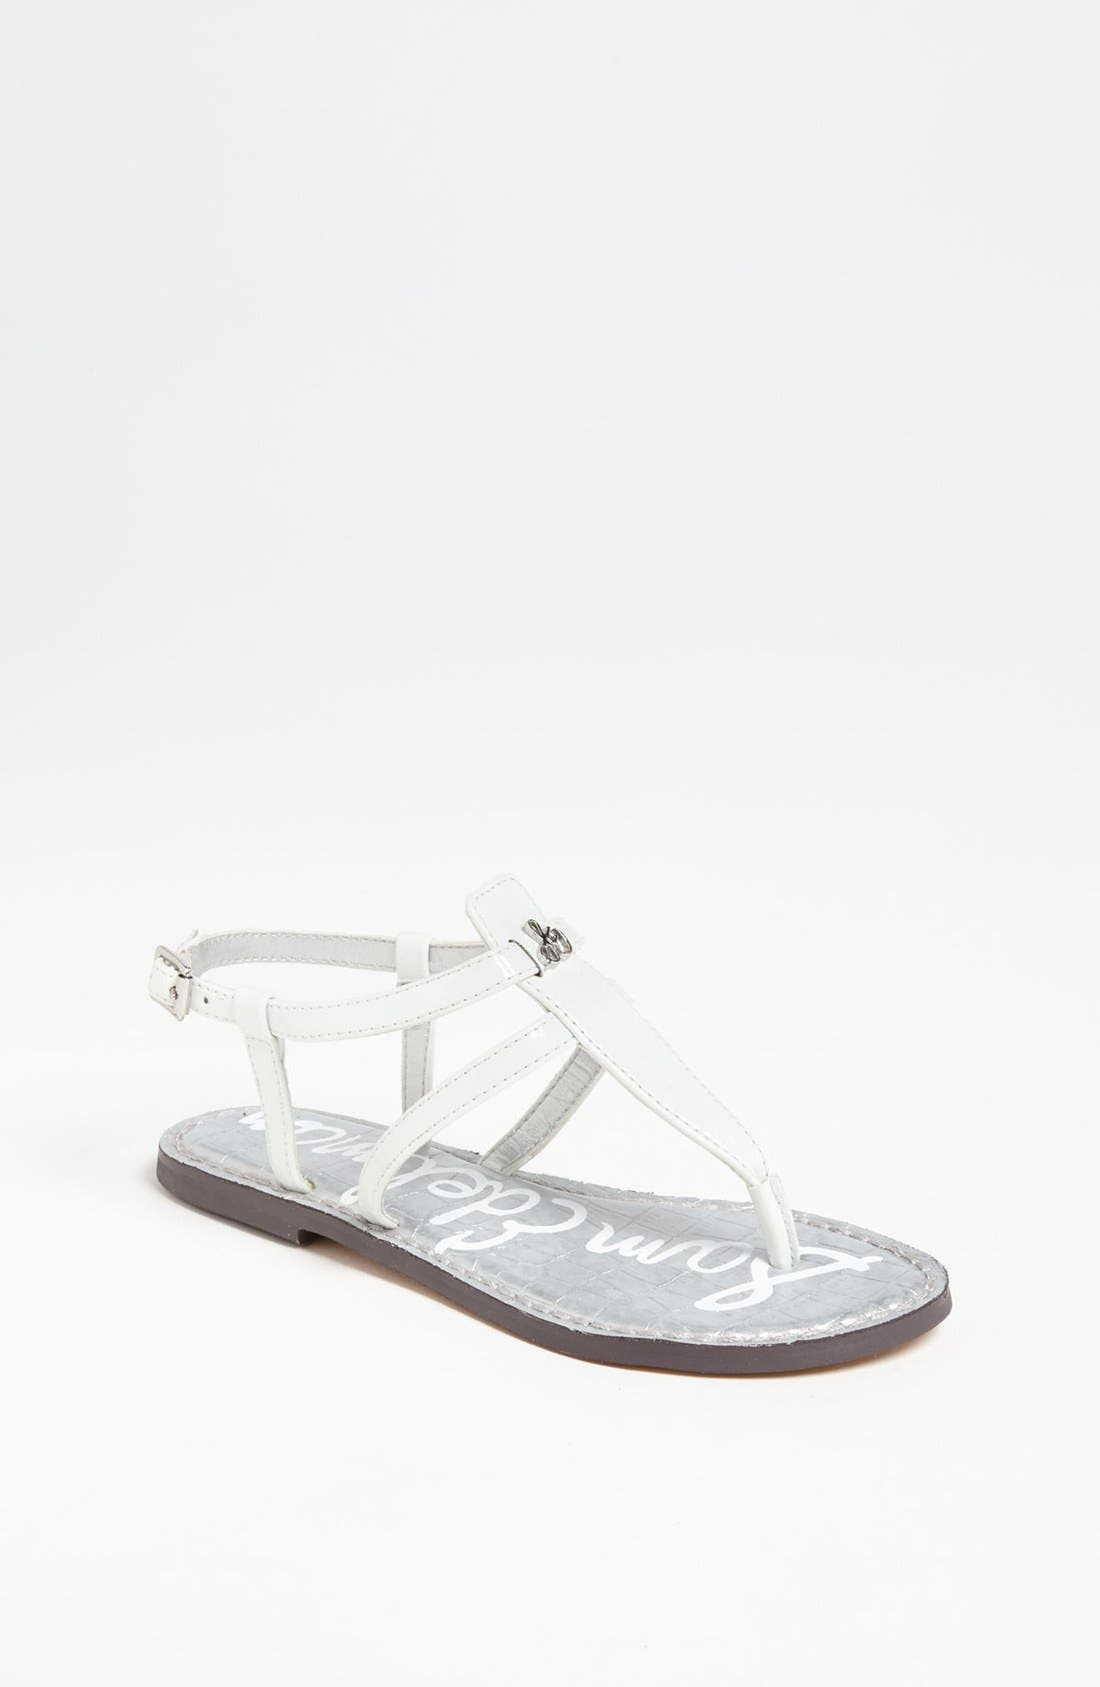 Main Image - Sam Edelman 'Gia' Sandal (Toddler, Little Kid & Big Kid)